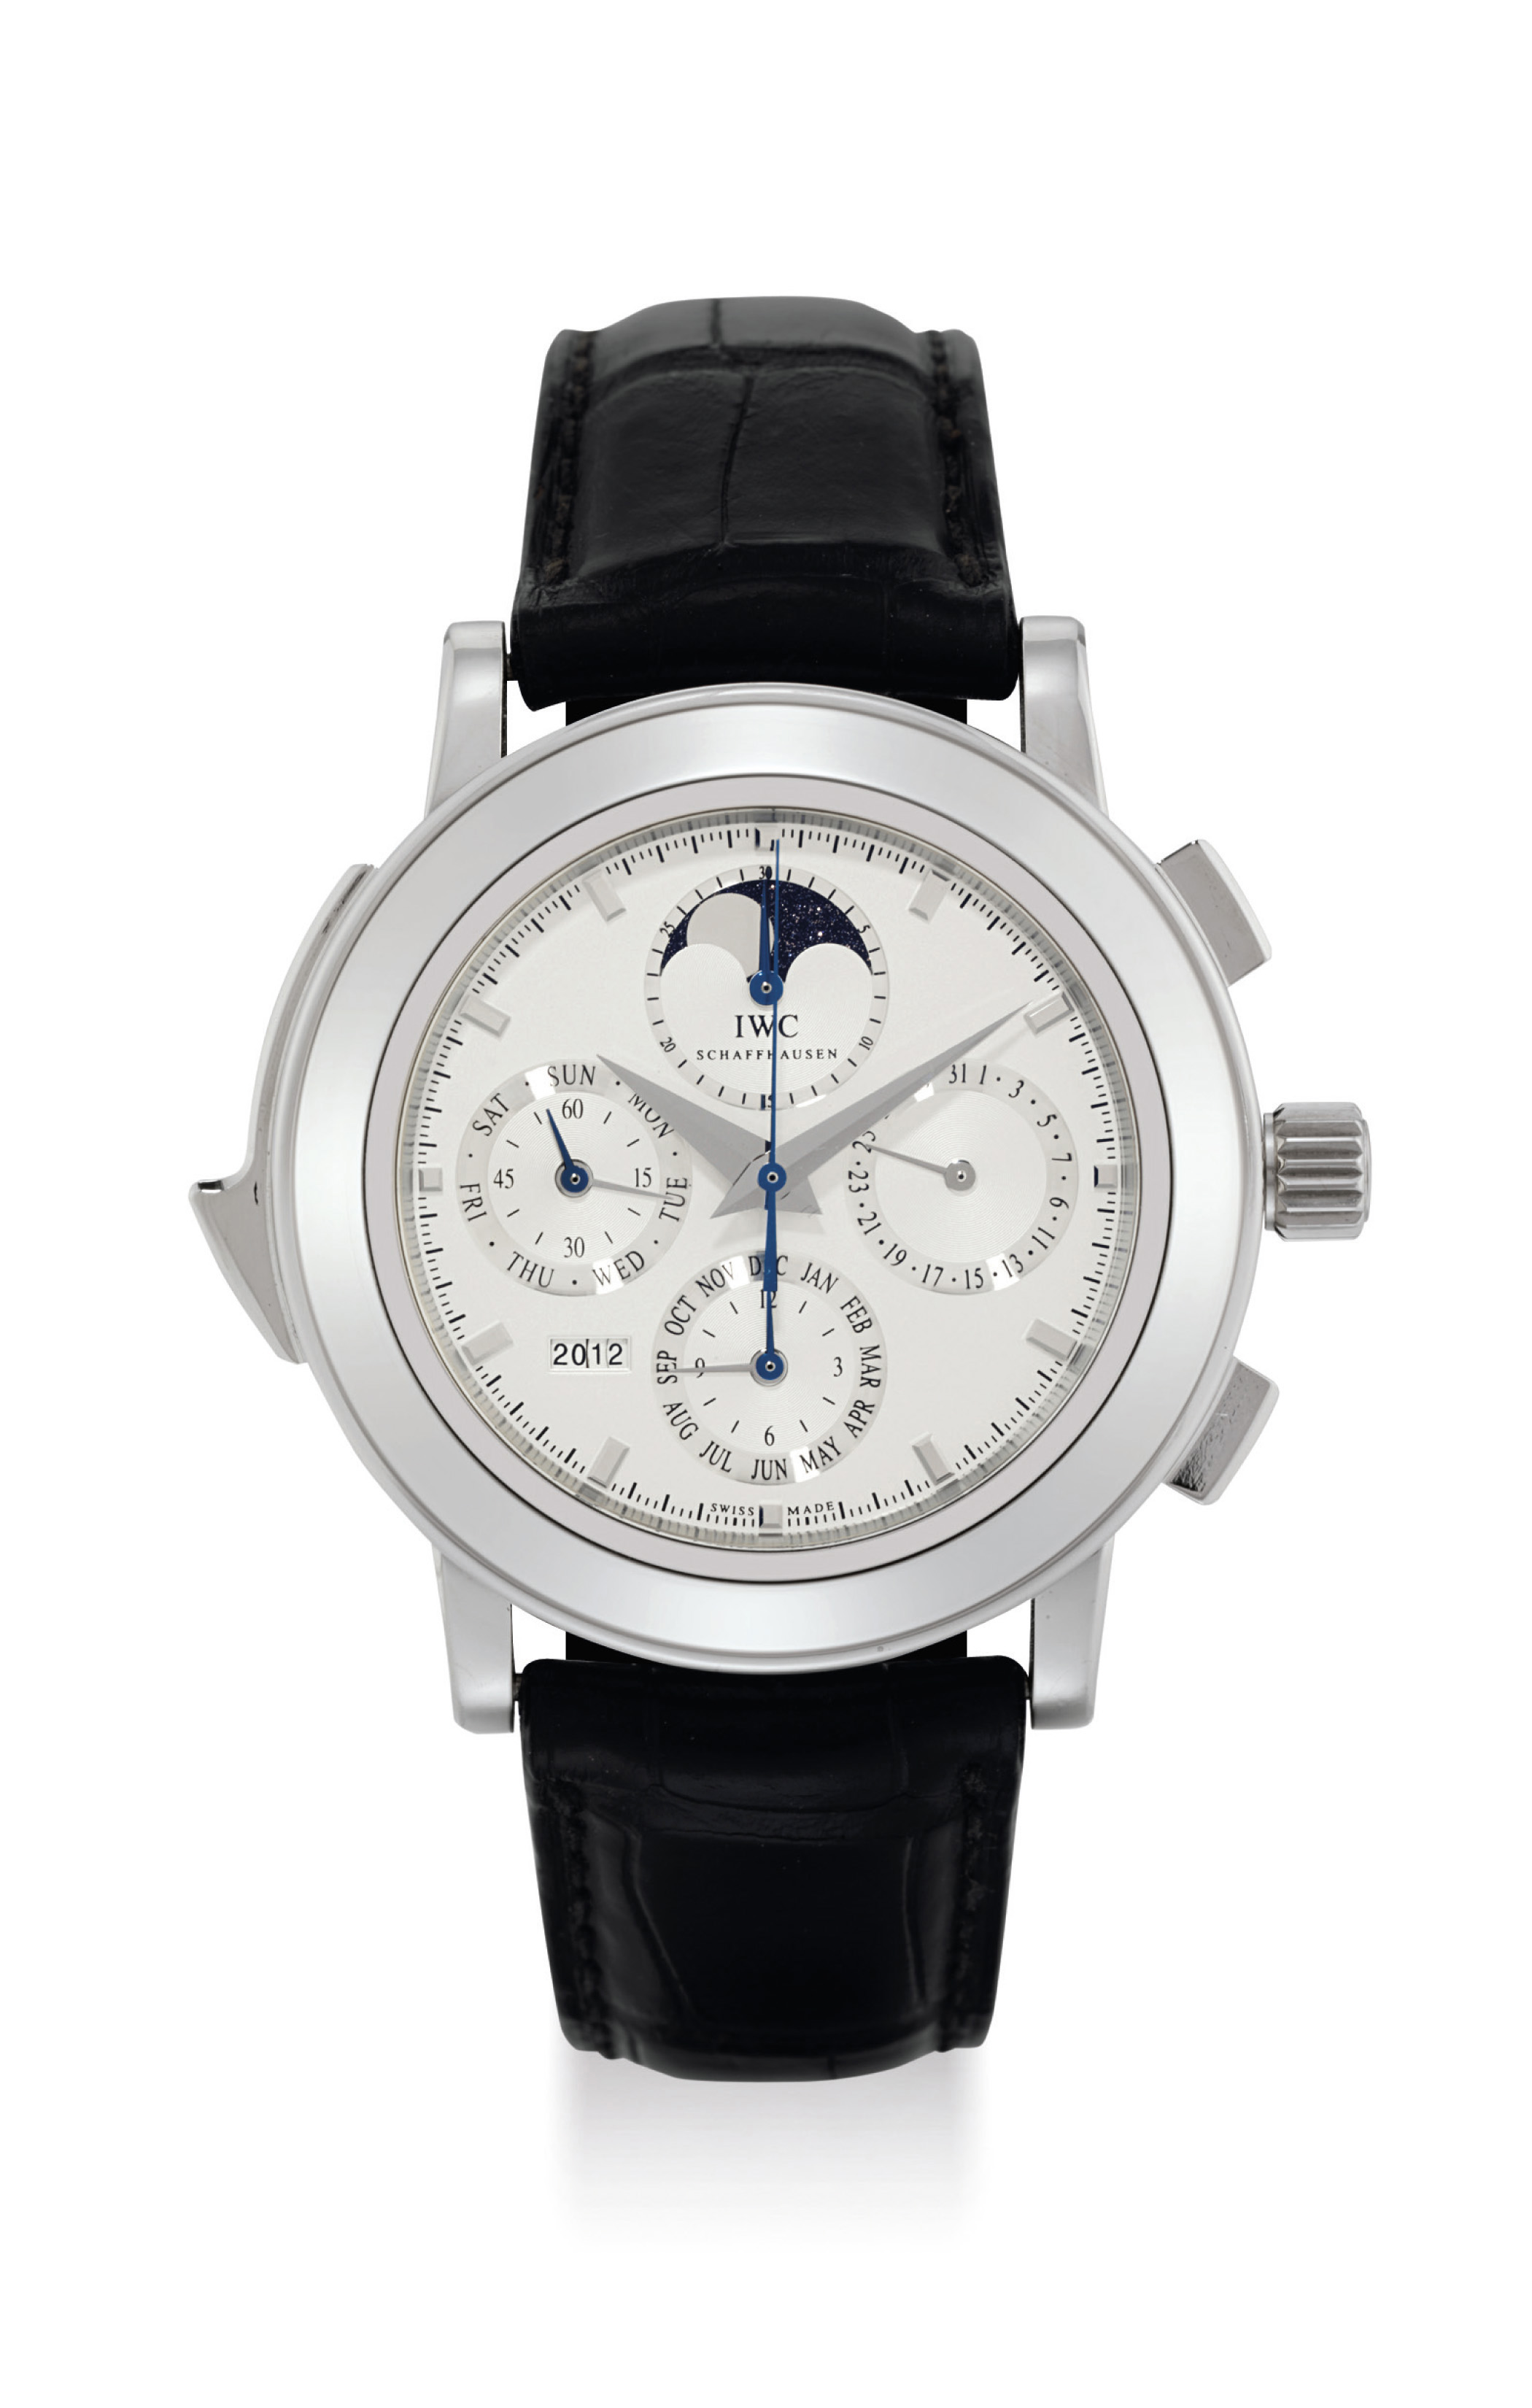 IWC. A FINE, LARGE, HEAVY AND VERY RARE PLATINUM LIMITED EDITION AUTOMATIC PERPETUAL CALENDAR MINUTE REPEATING CHRONOGRAPH WRISTWATCH WITH MOON PHASES AND YEAR DISPLAY